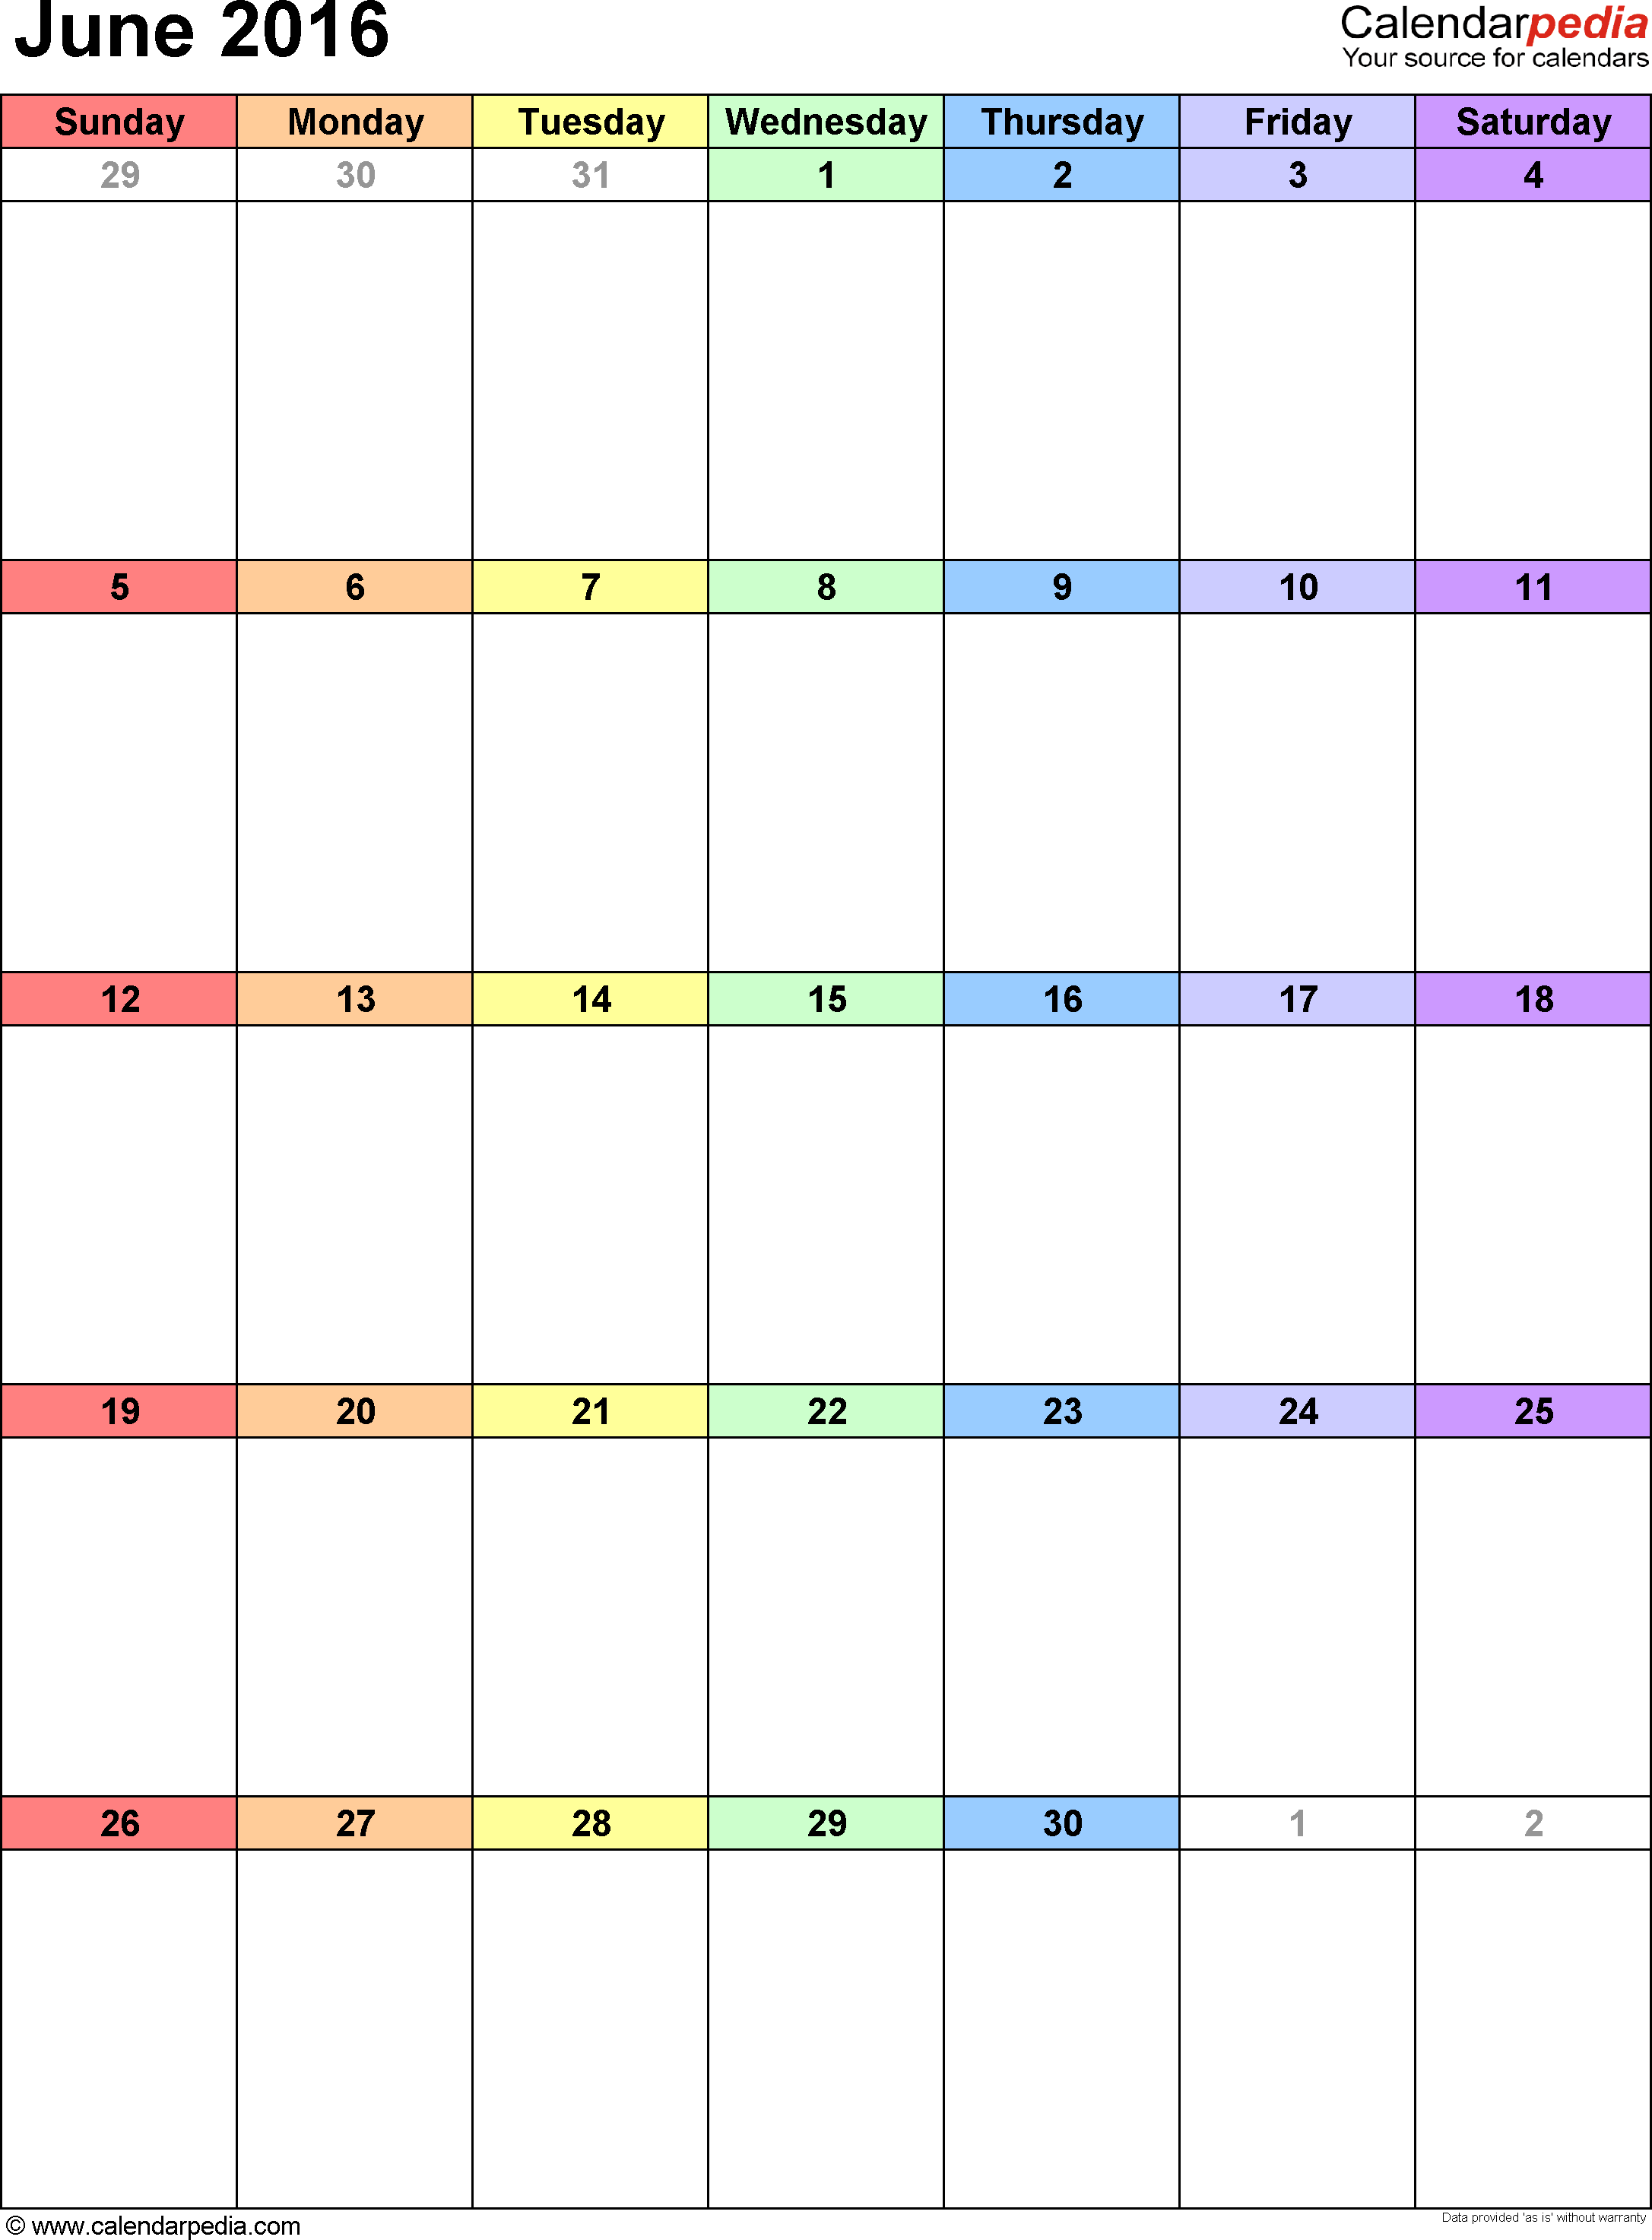 June 2016 calendar as printable Word, Excel & PDF templates